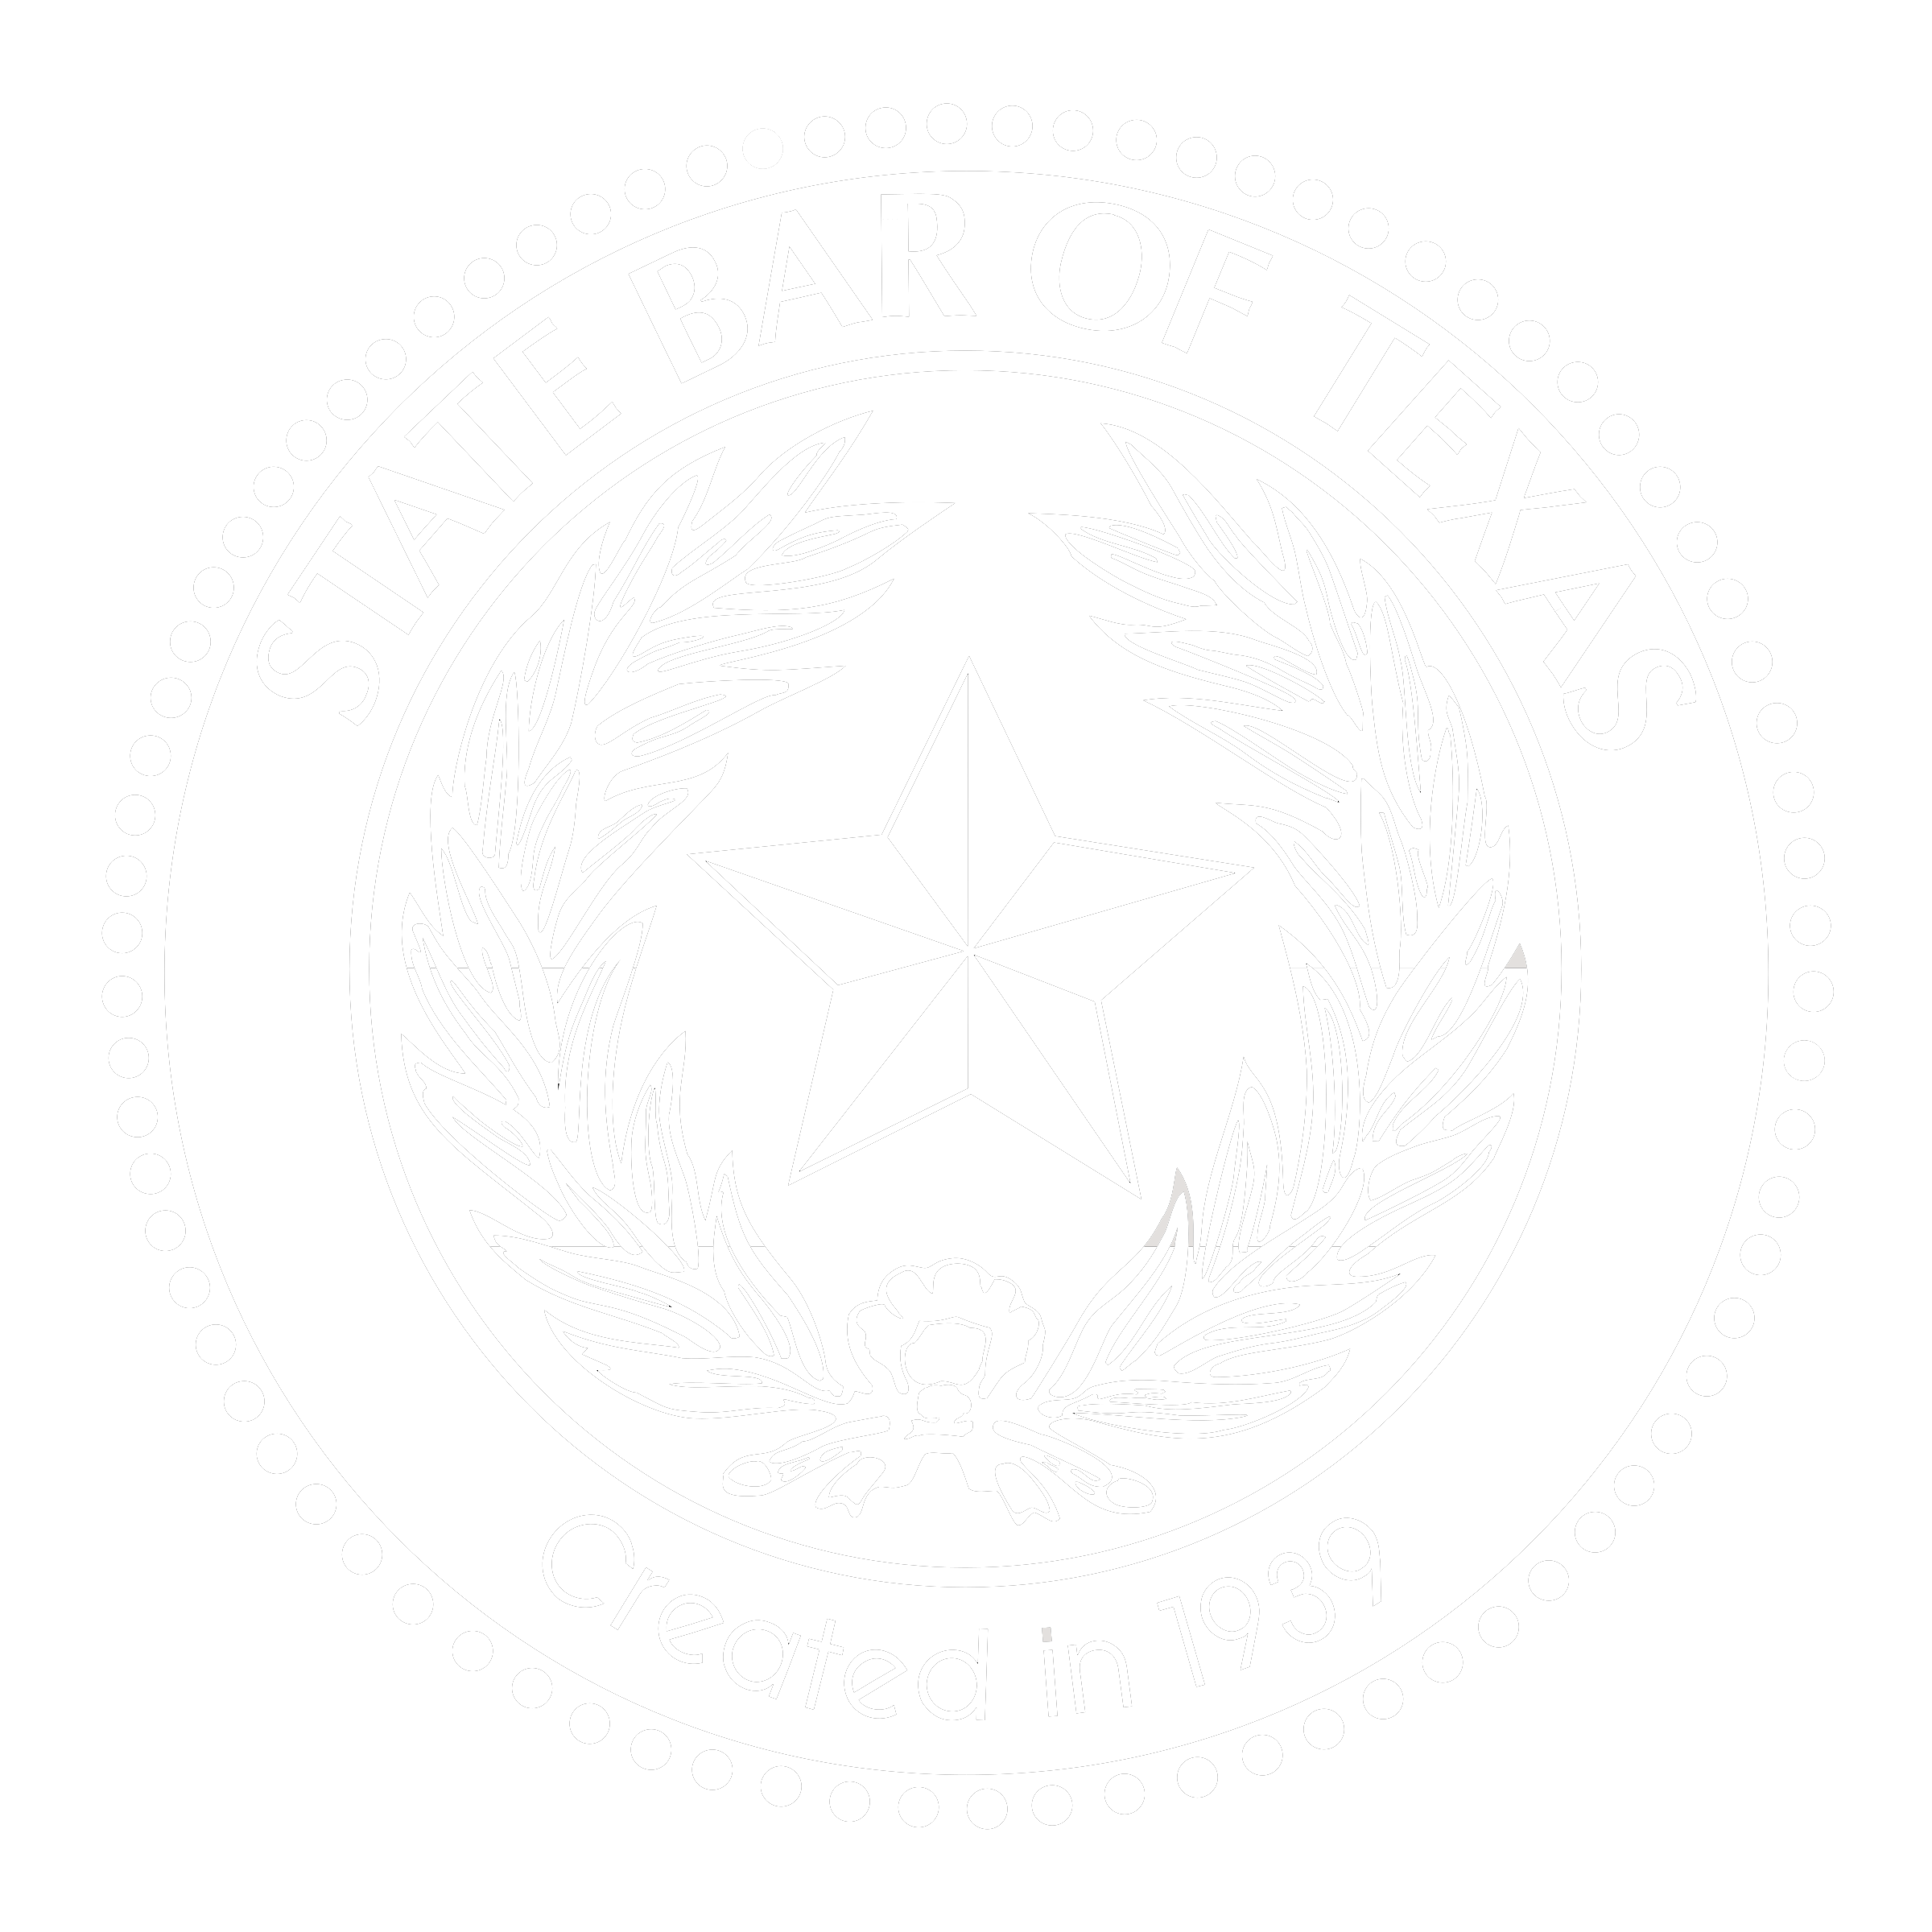 AZ Law Firm | Consumer Law in Austin, Kyle, Buda, San Marcos, Pflugerville, Central Texas